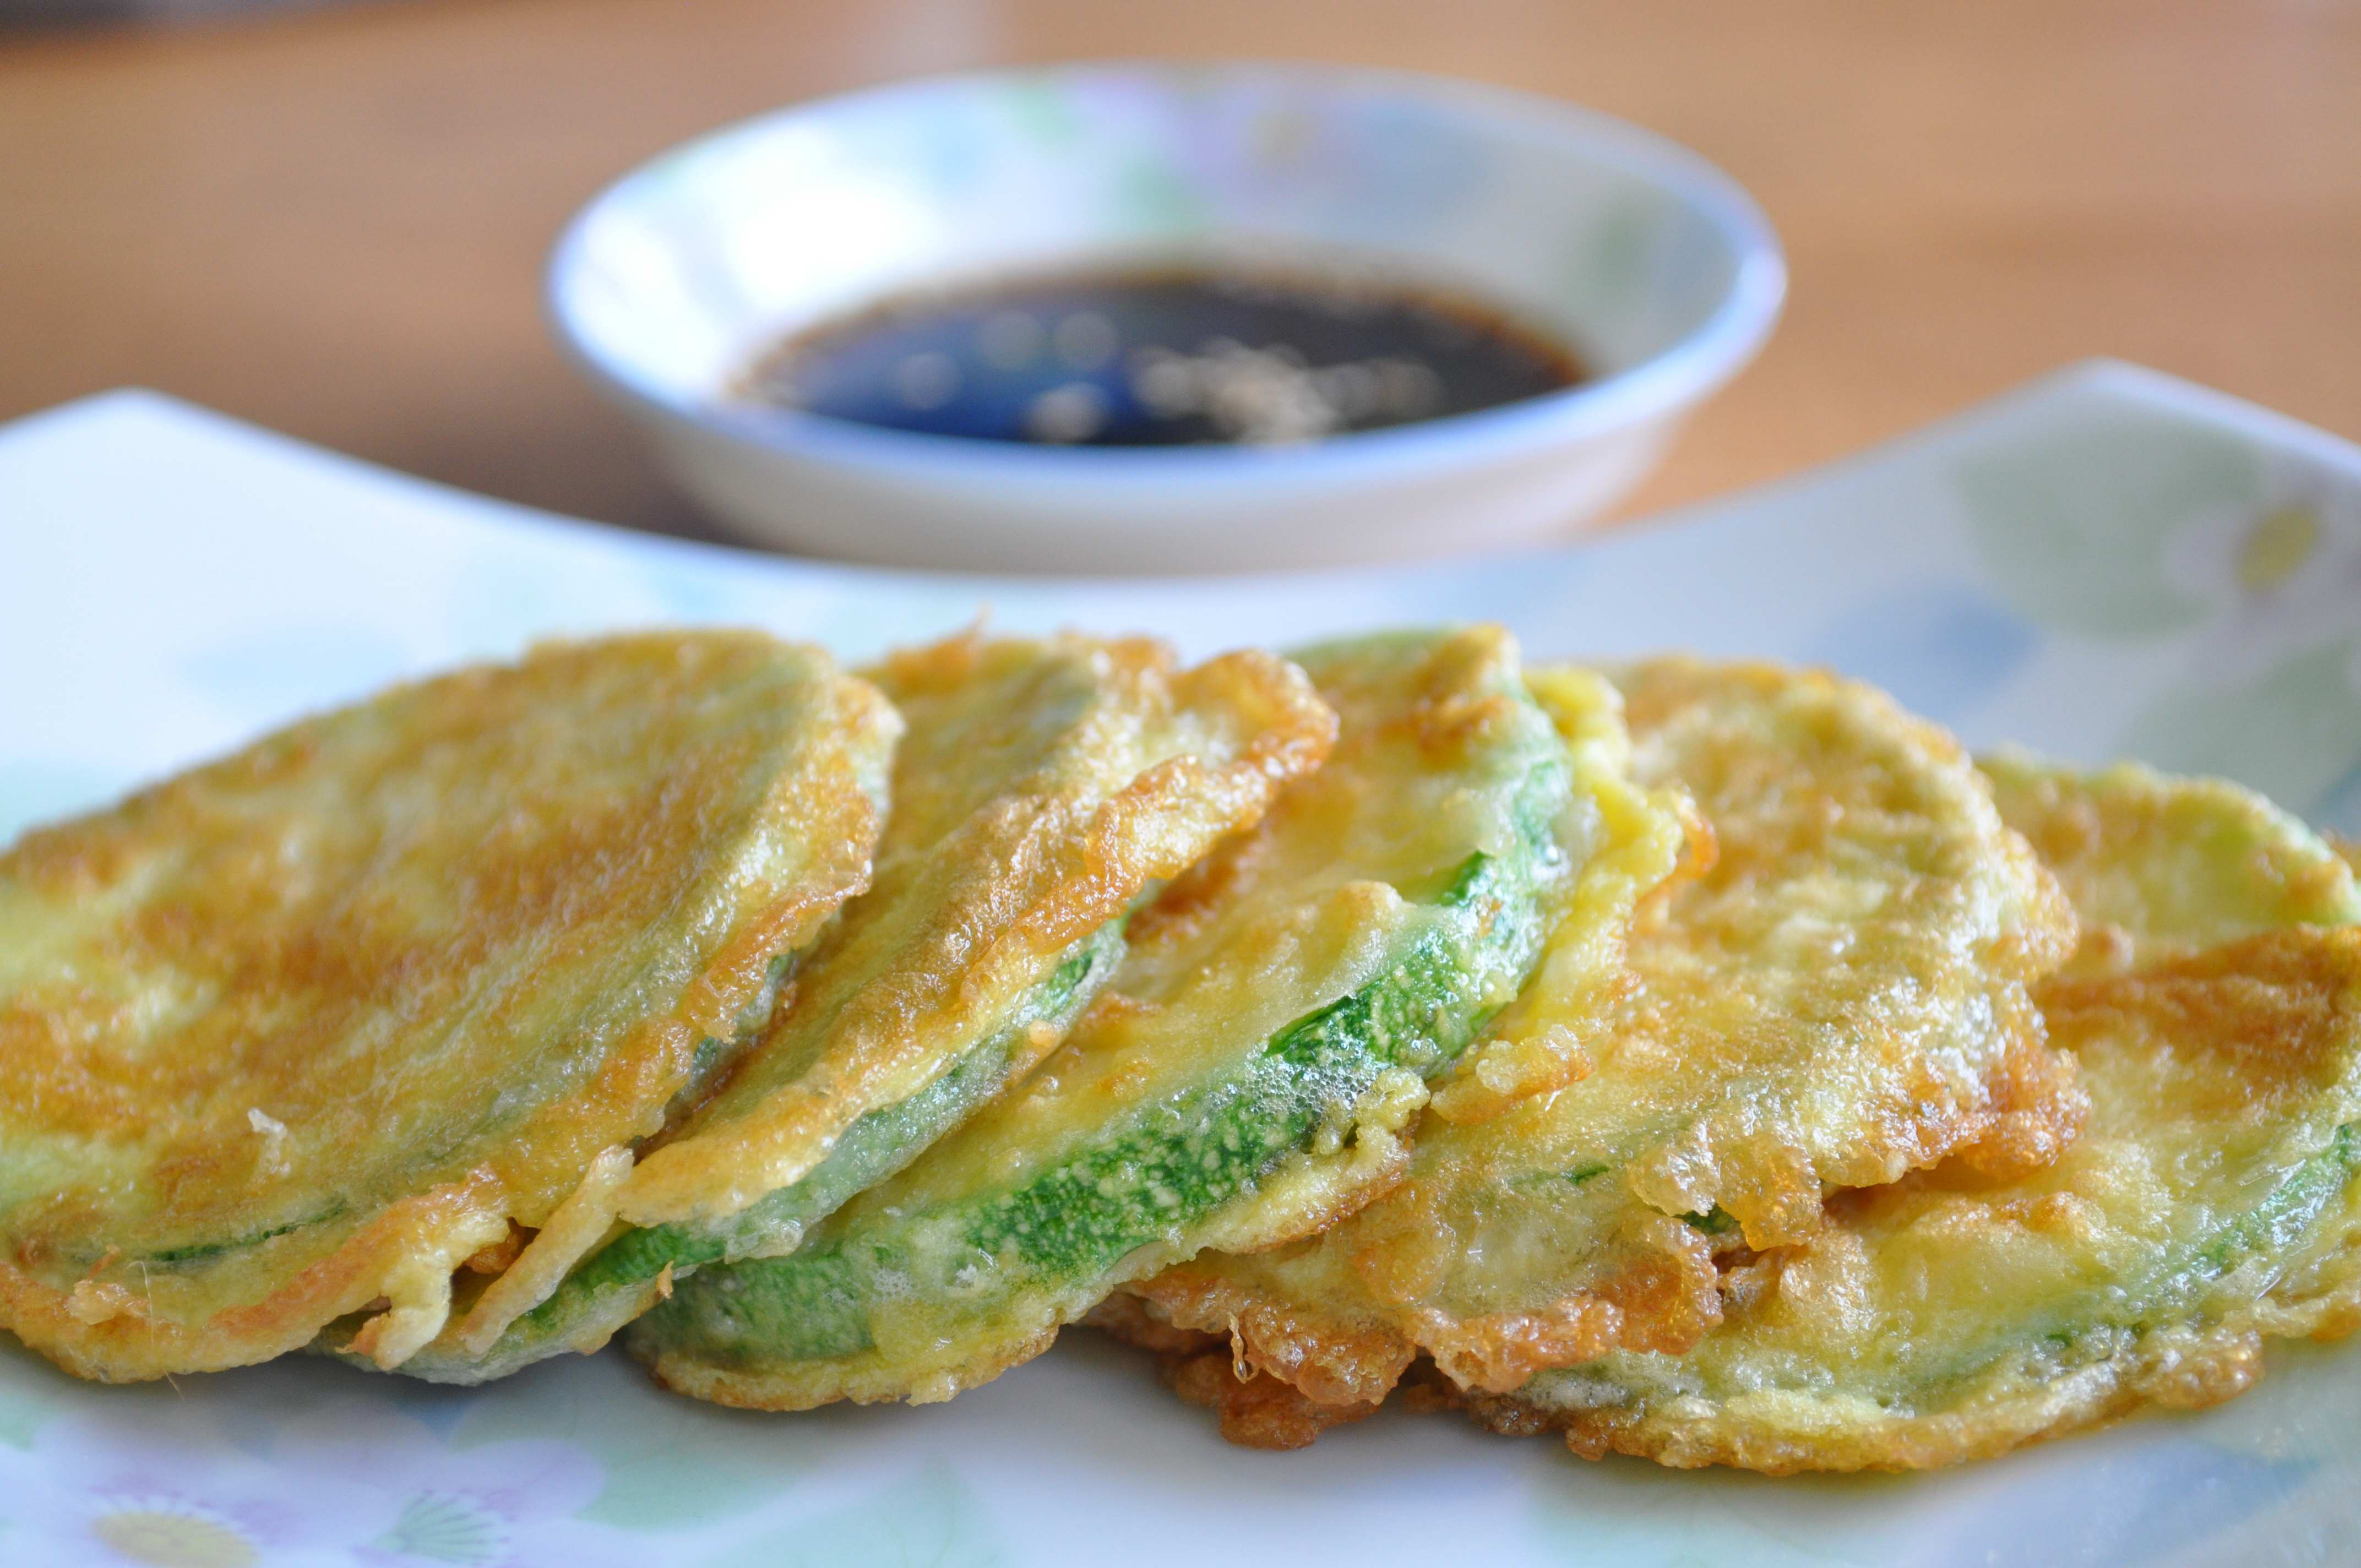 Pan-fried Zucchini Fritters (호박전 Hobak Jeon) | Kimchimari